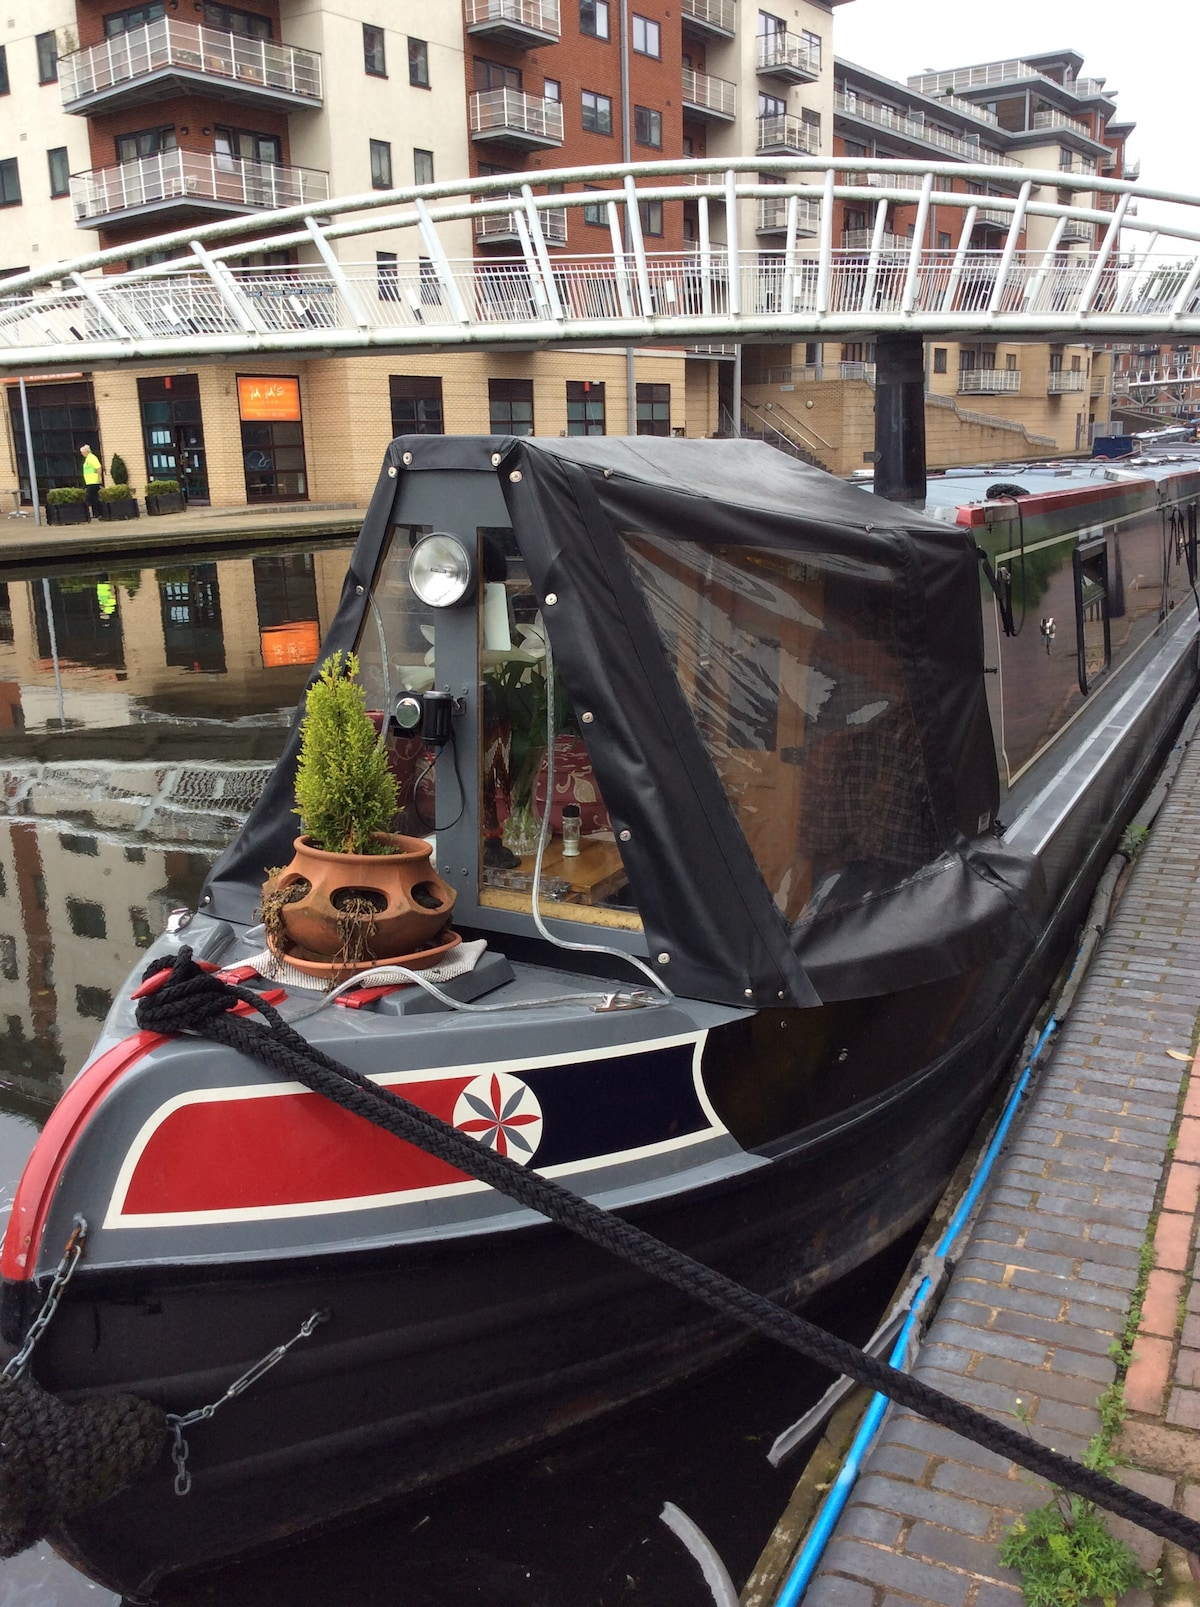 City Centre Narrowboat B&B B.ham.